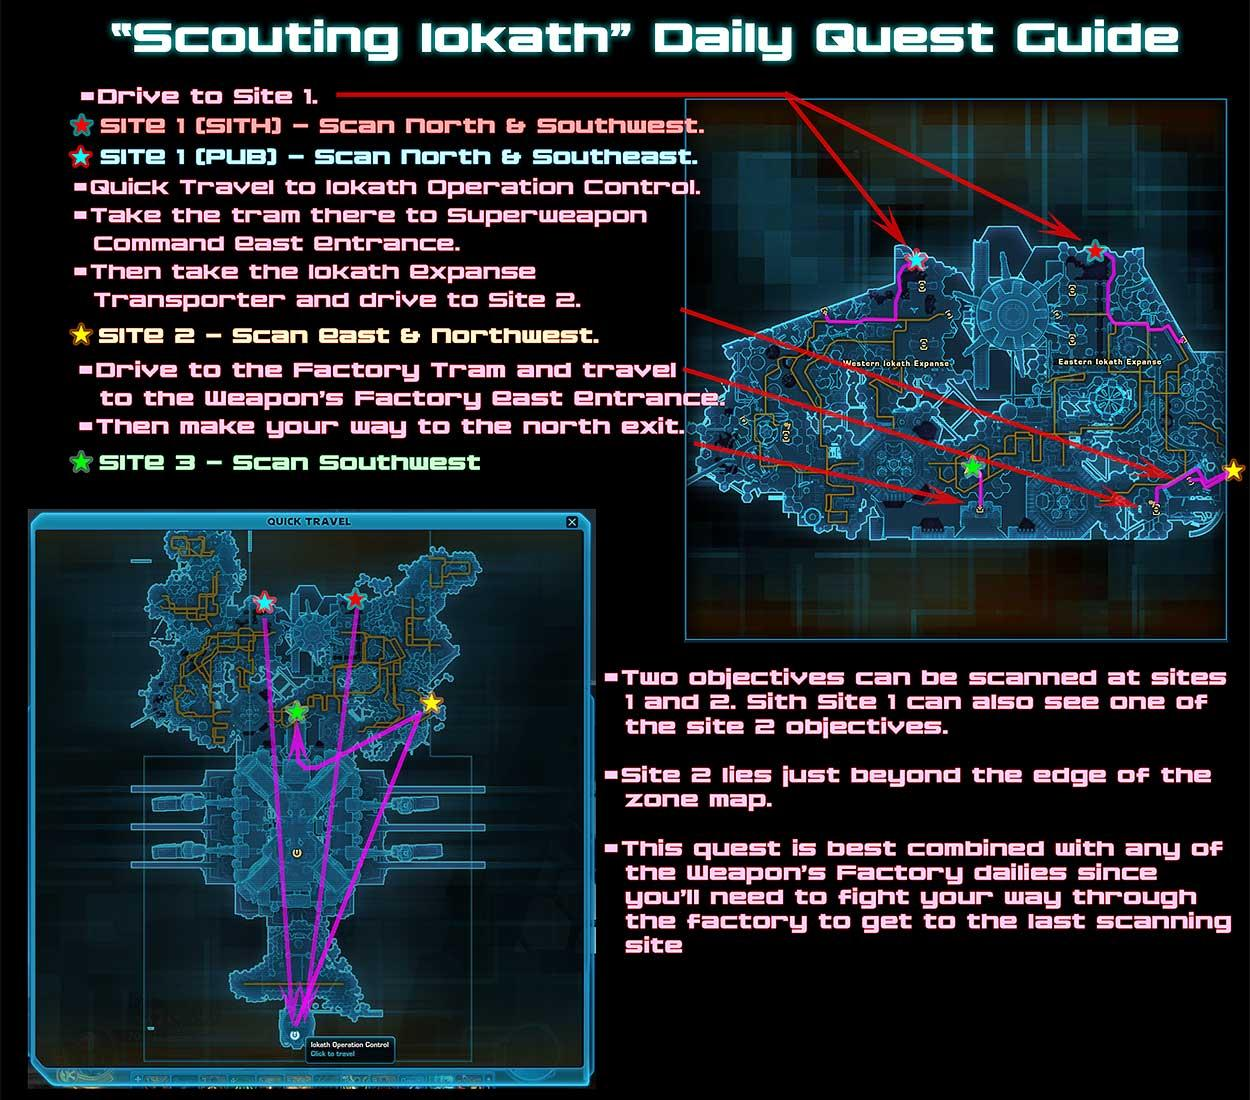 mercenary post daily quest guide